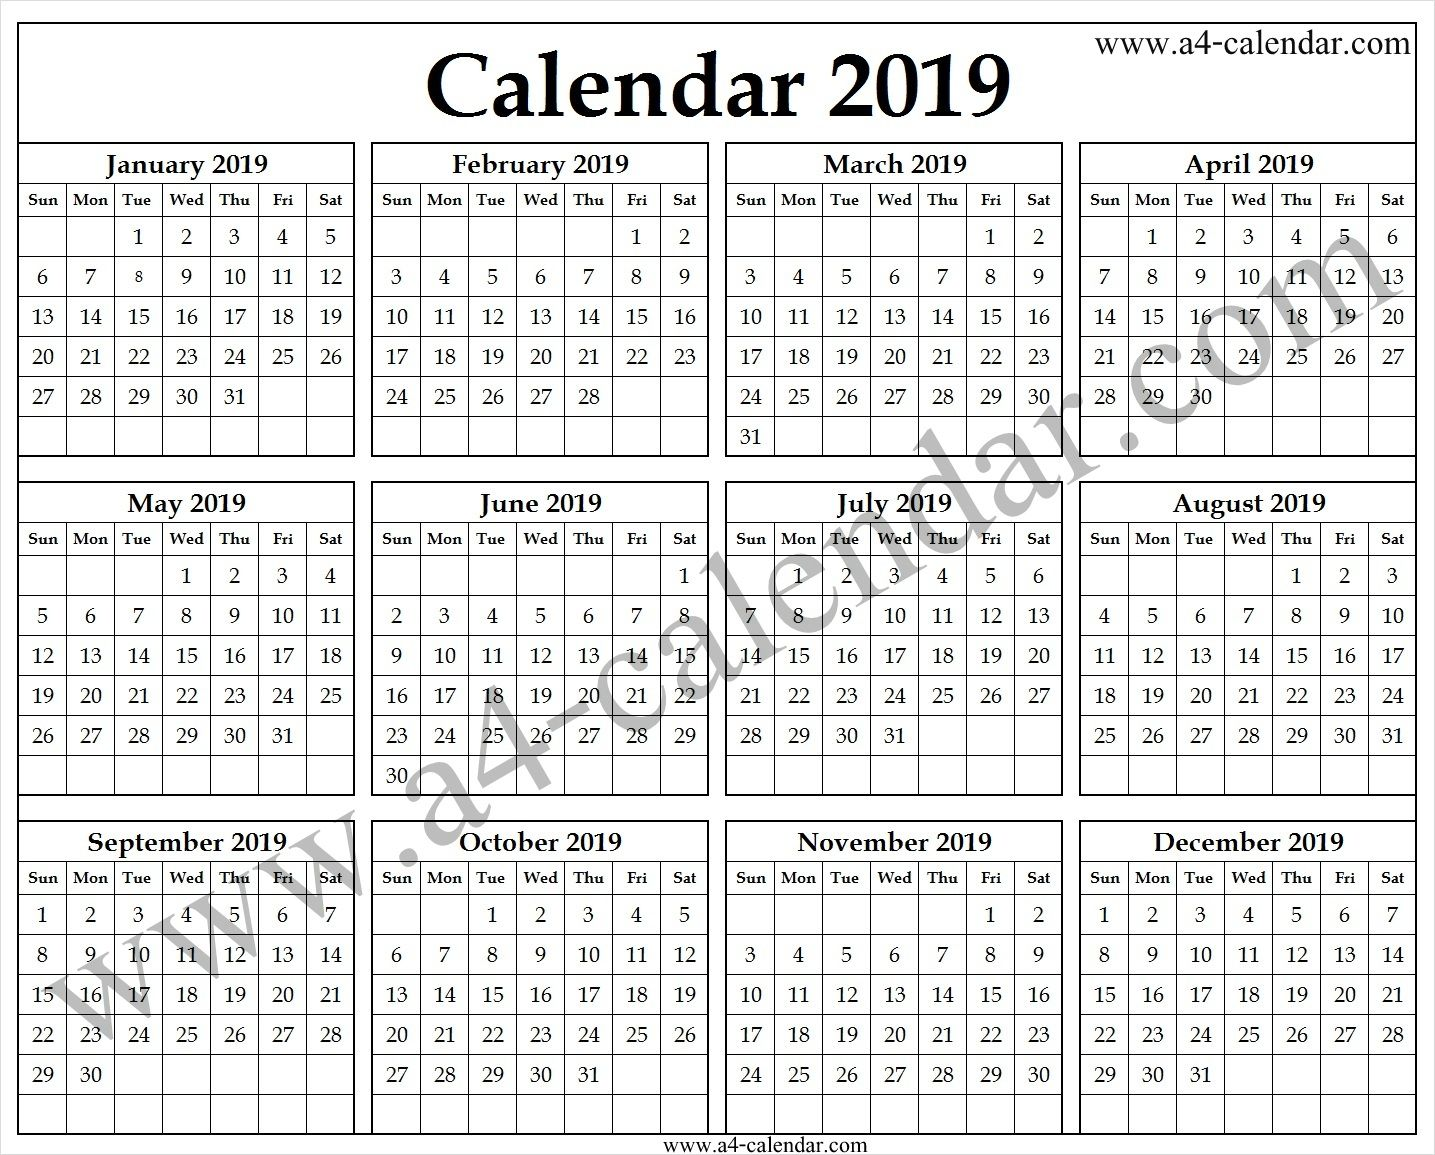 Online Calendar 2019 Uk 2019 Calendar Template Pinterest